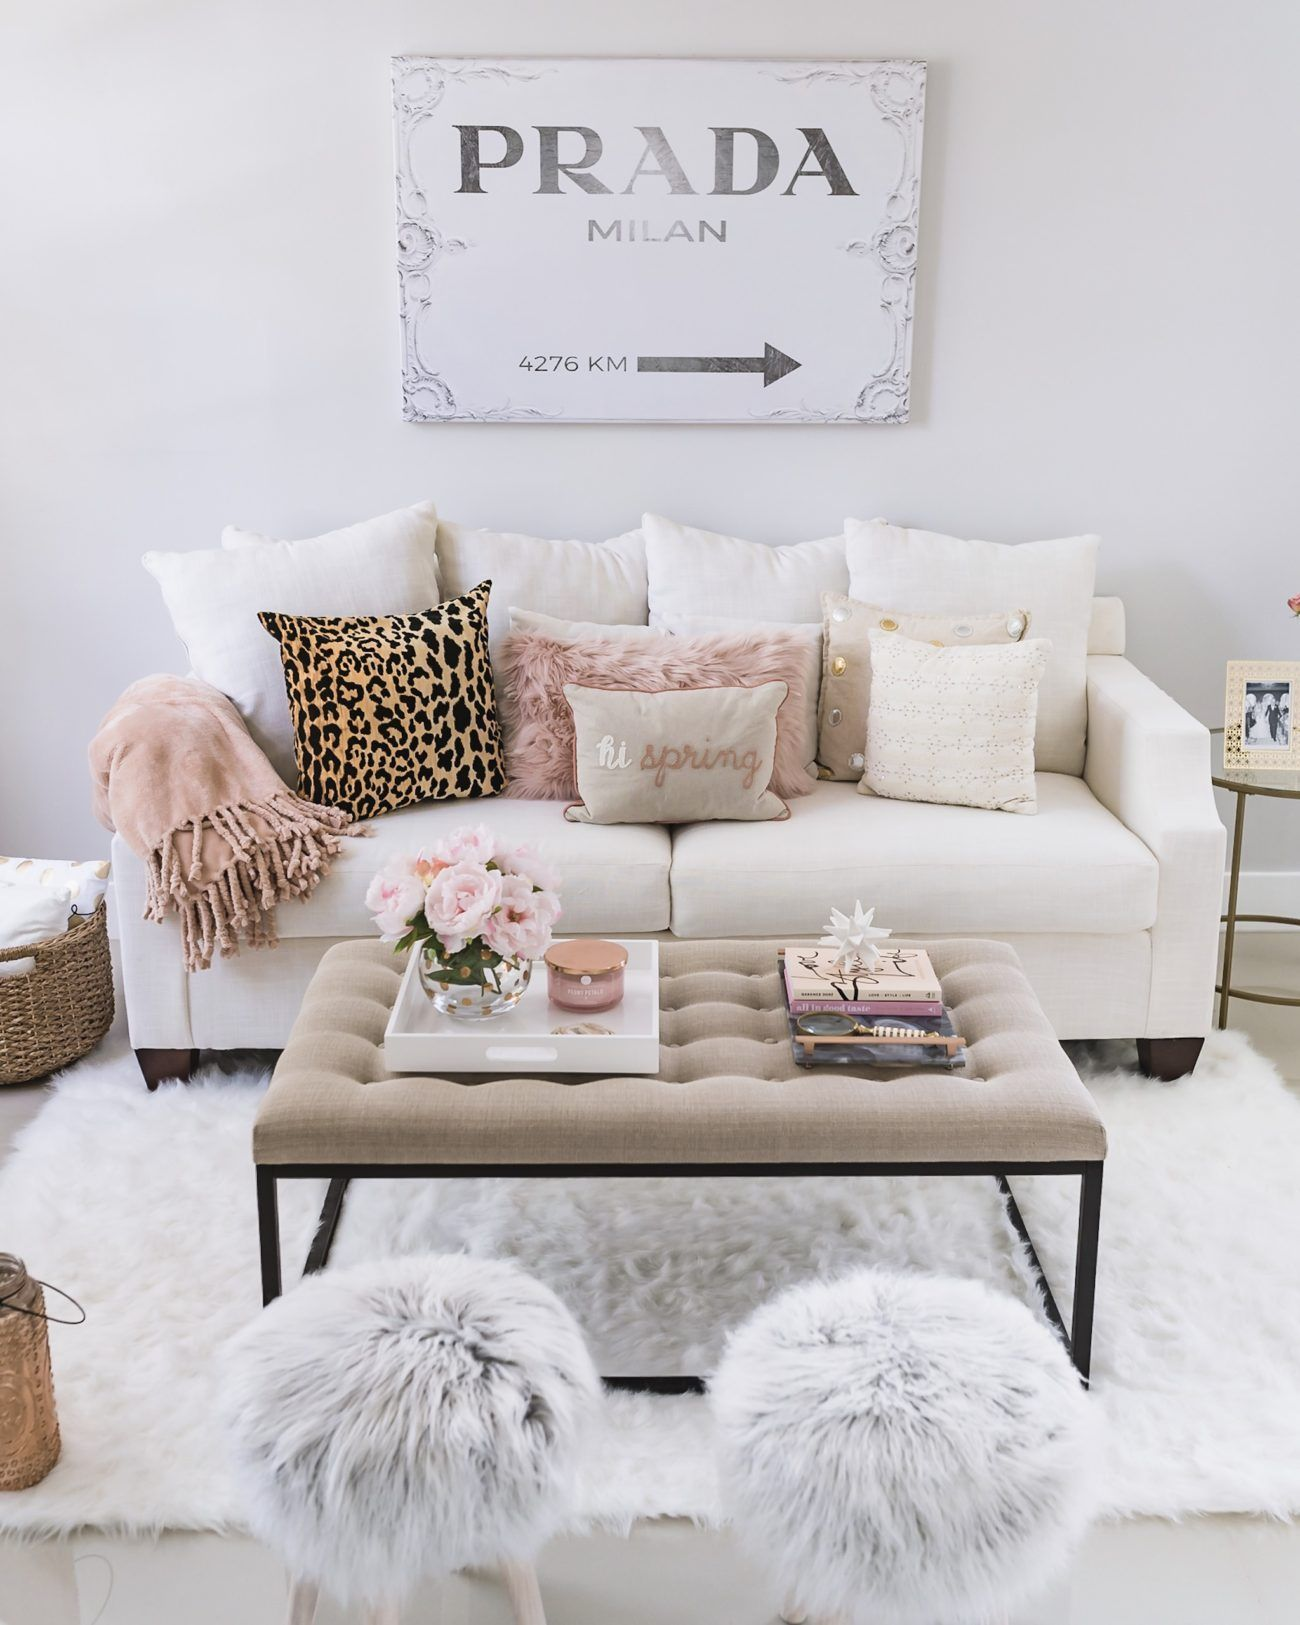 Pink living rooms ideas that are not overbearing - Best 25 Fancy Living Rooms Ideas On Pinterest Luxury Living Rooms Luxury Living And Fancy Houses